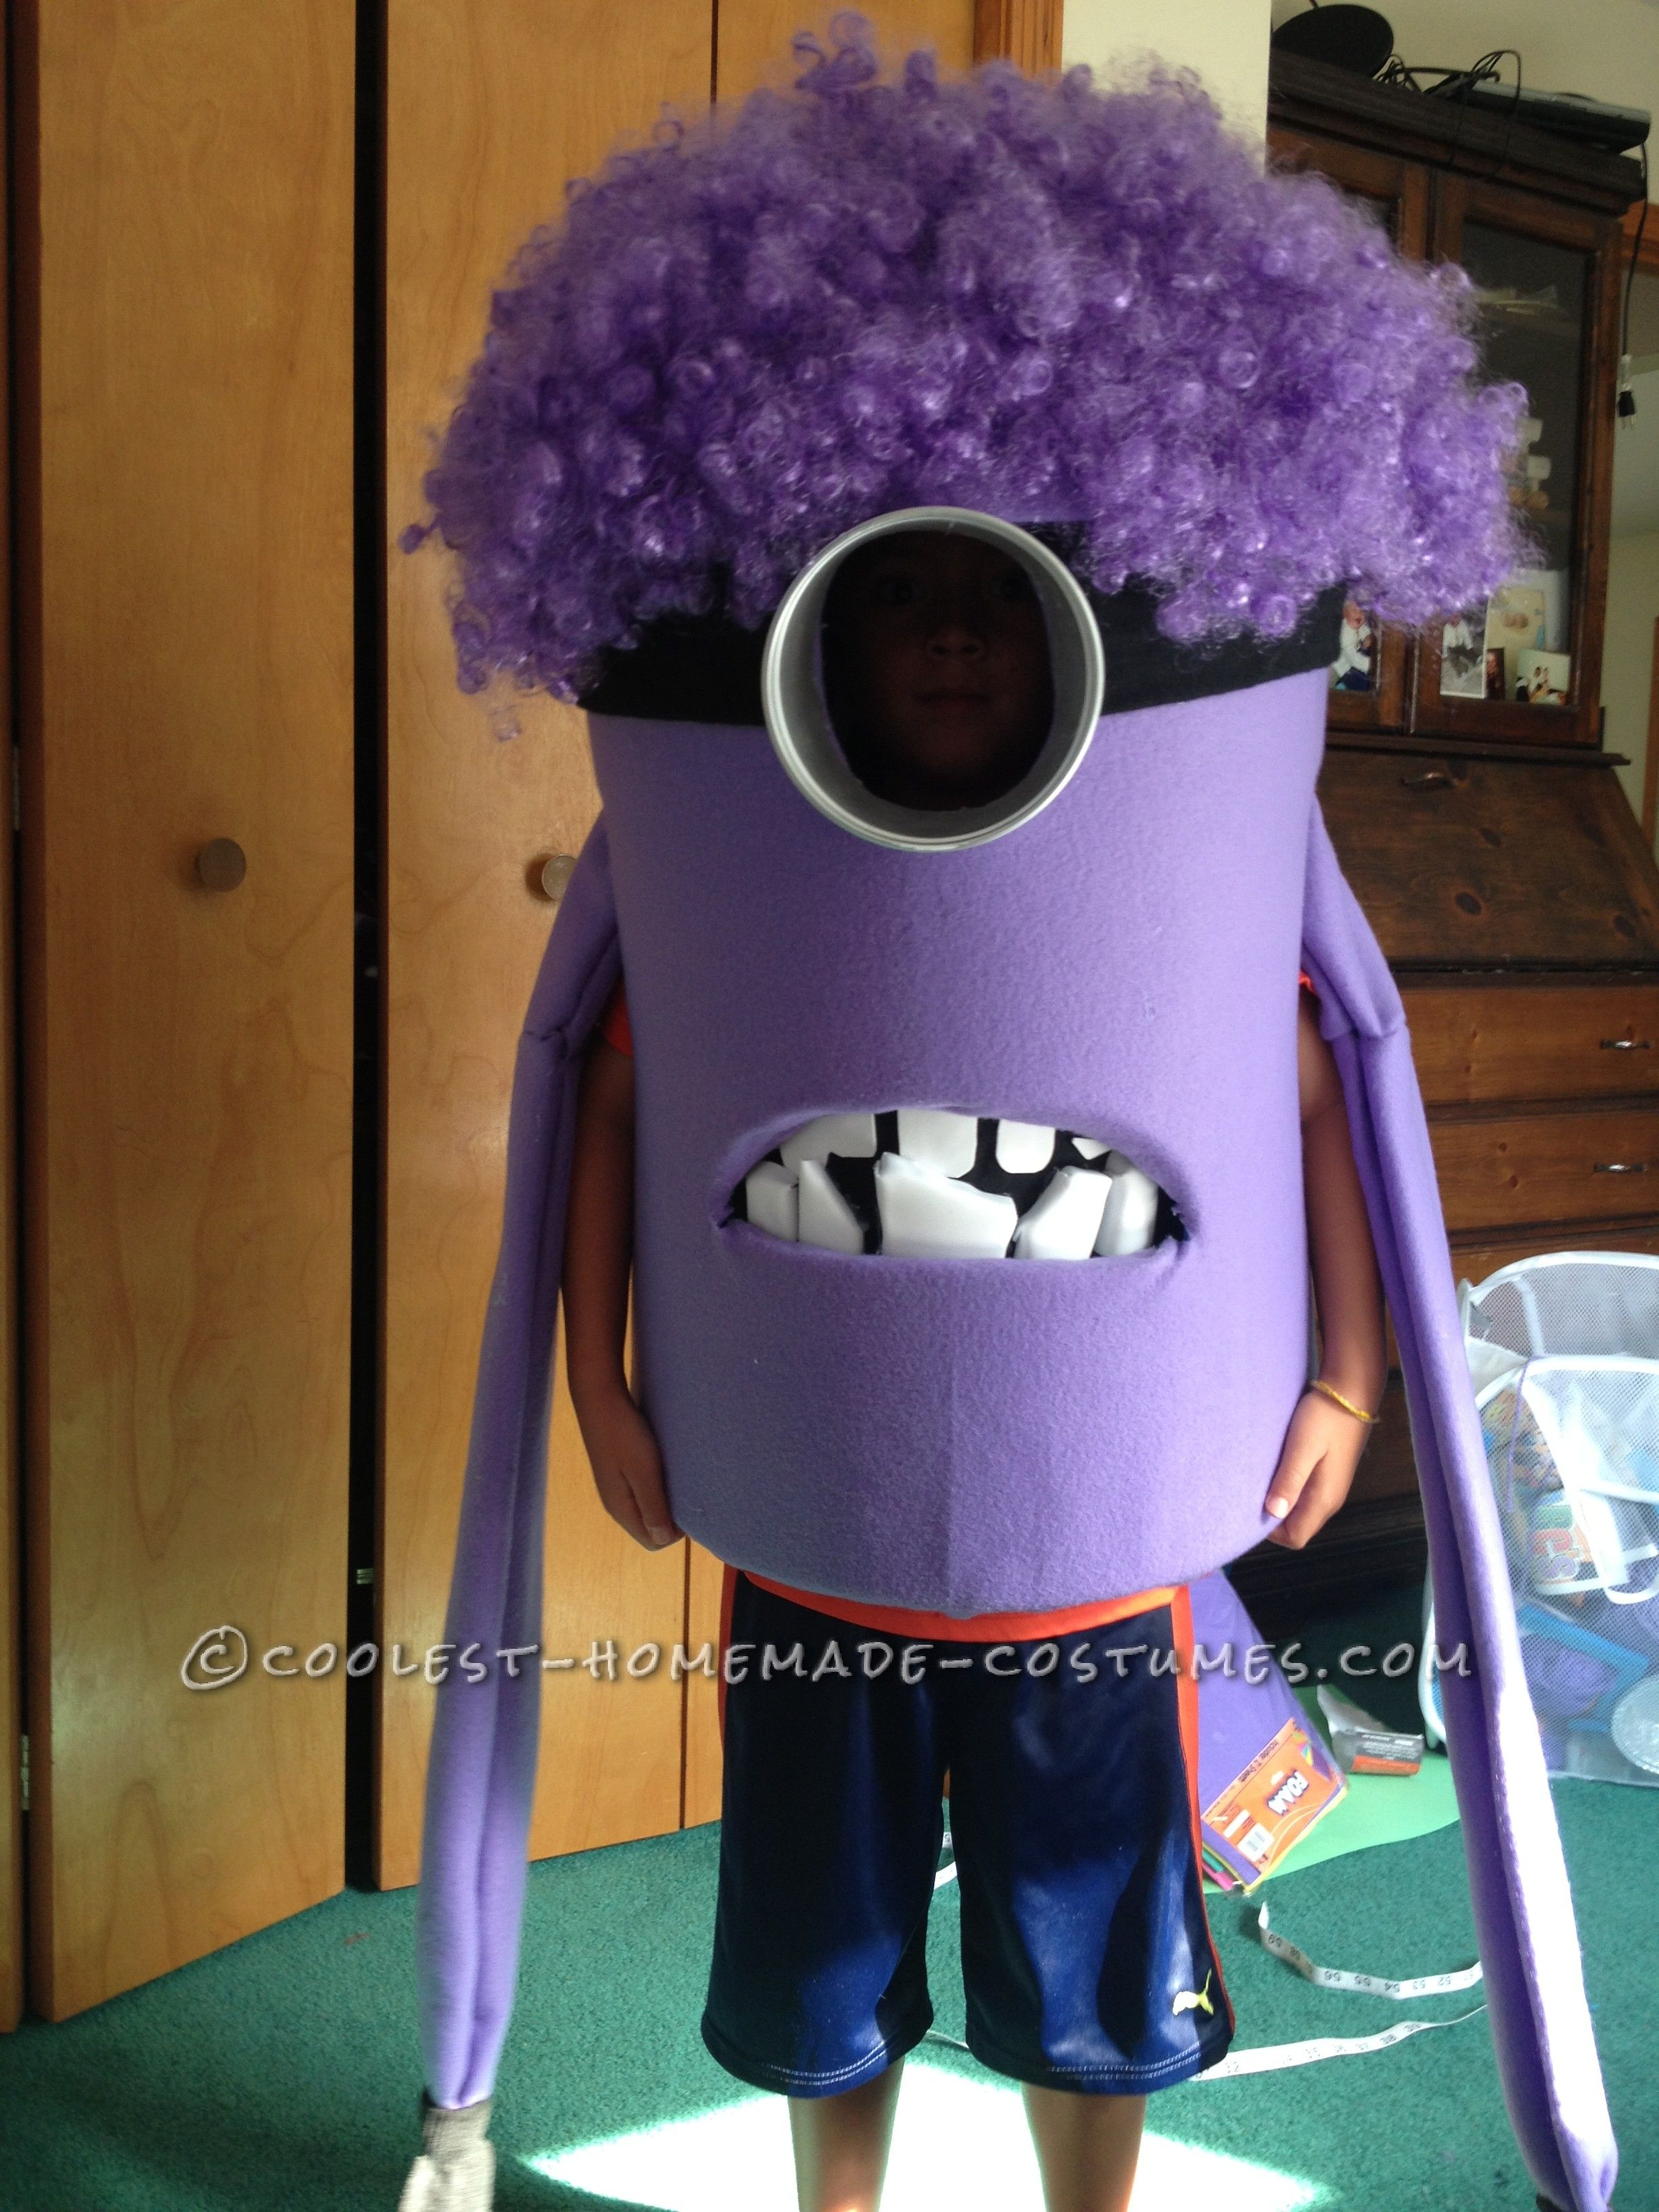 Coolest Homemade Purple Evil Minion Costume from Despicable Meu2026 Enter Coolest Halloween Costume Contest at //ideas.coolest-homemade-costumes.com/submit ... & Coolest Homemade Purple Evil Minion Costume from Despicable Me ...